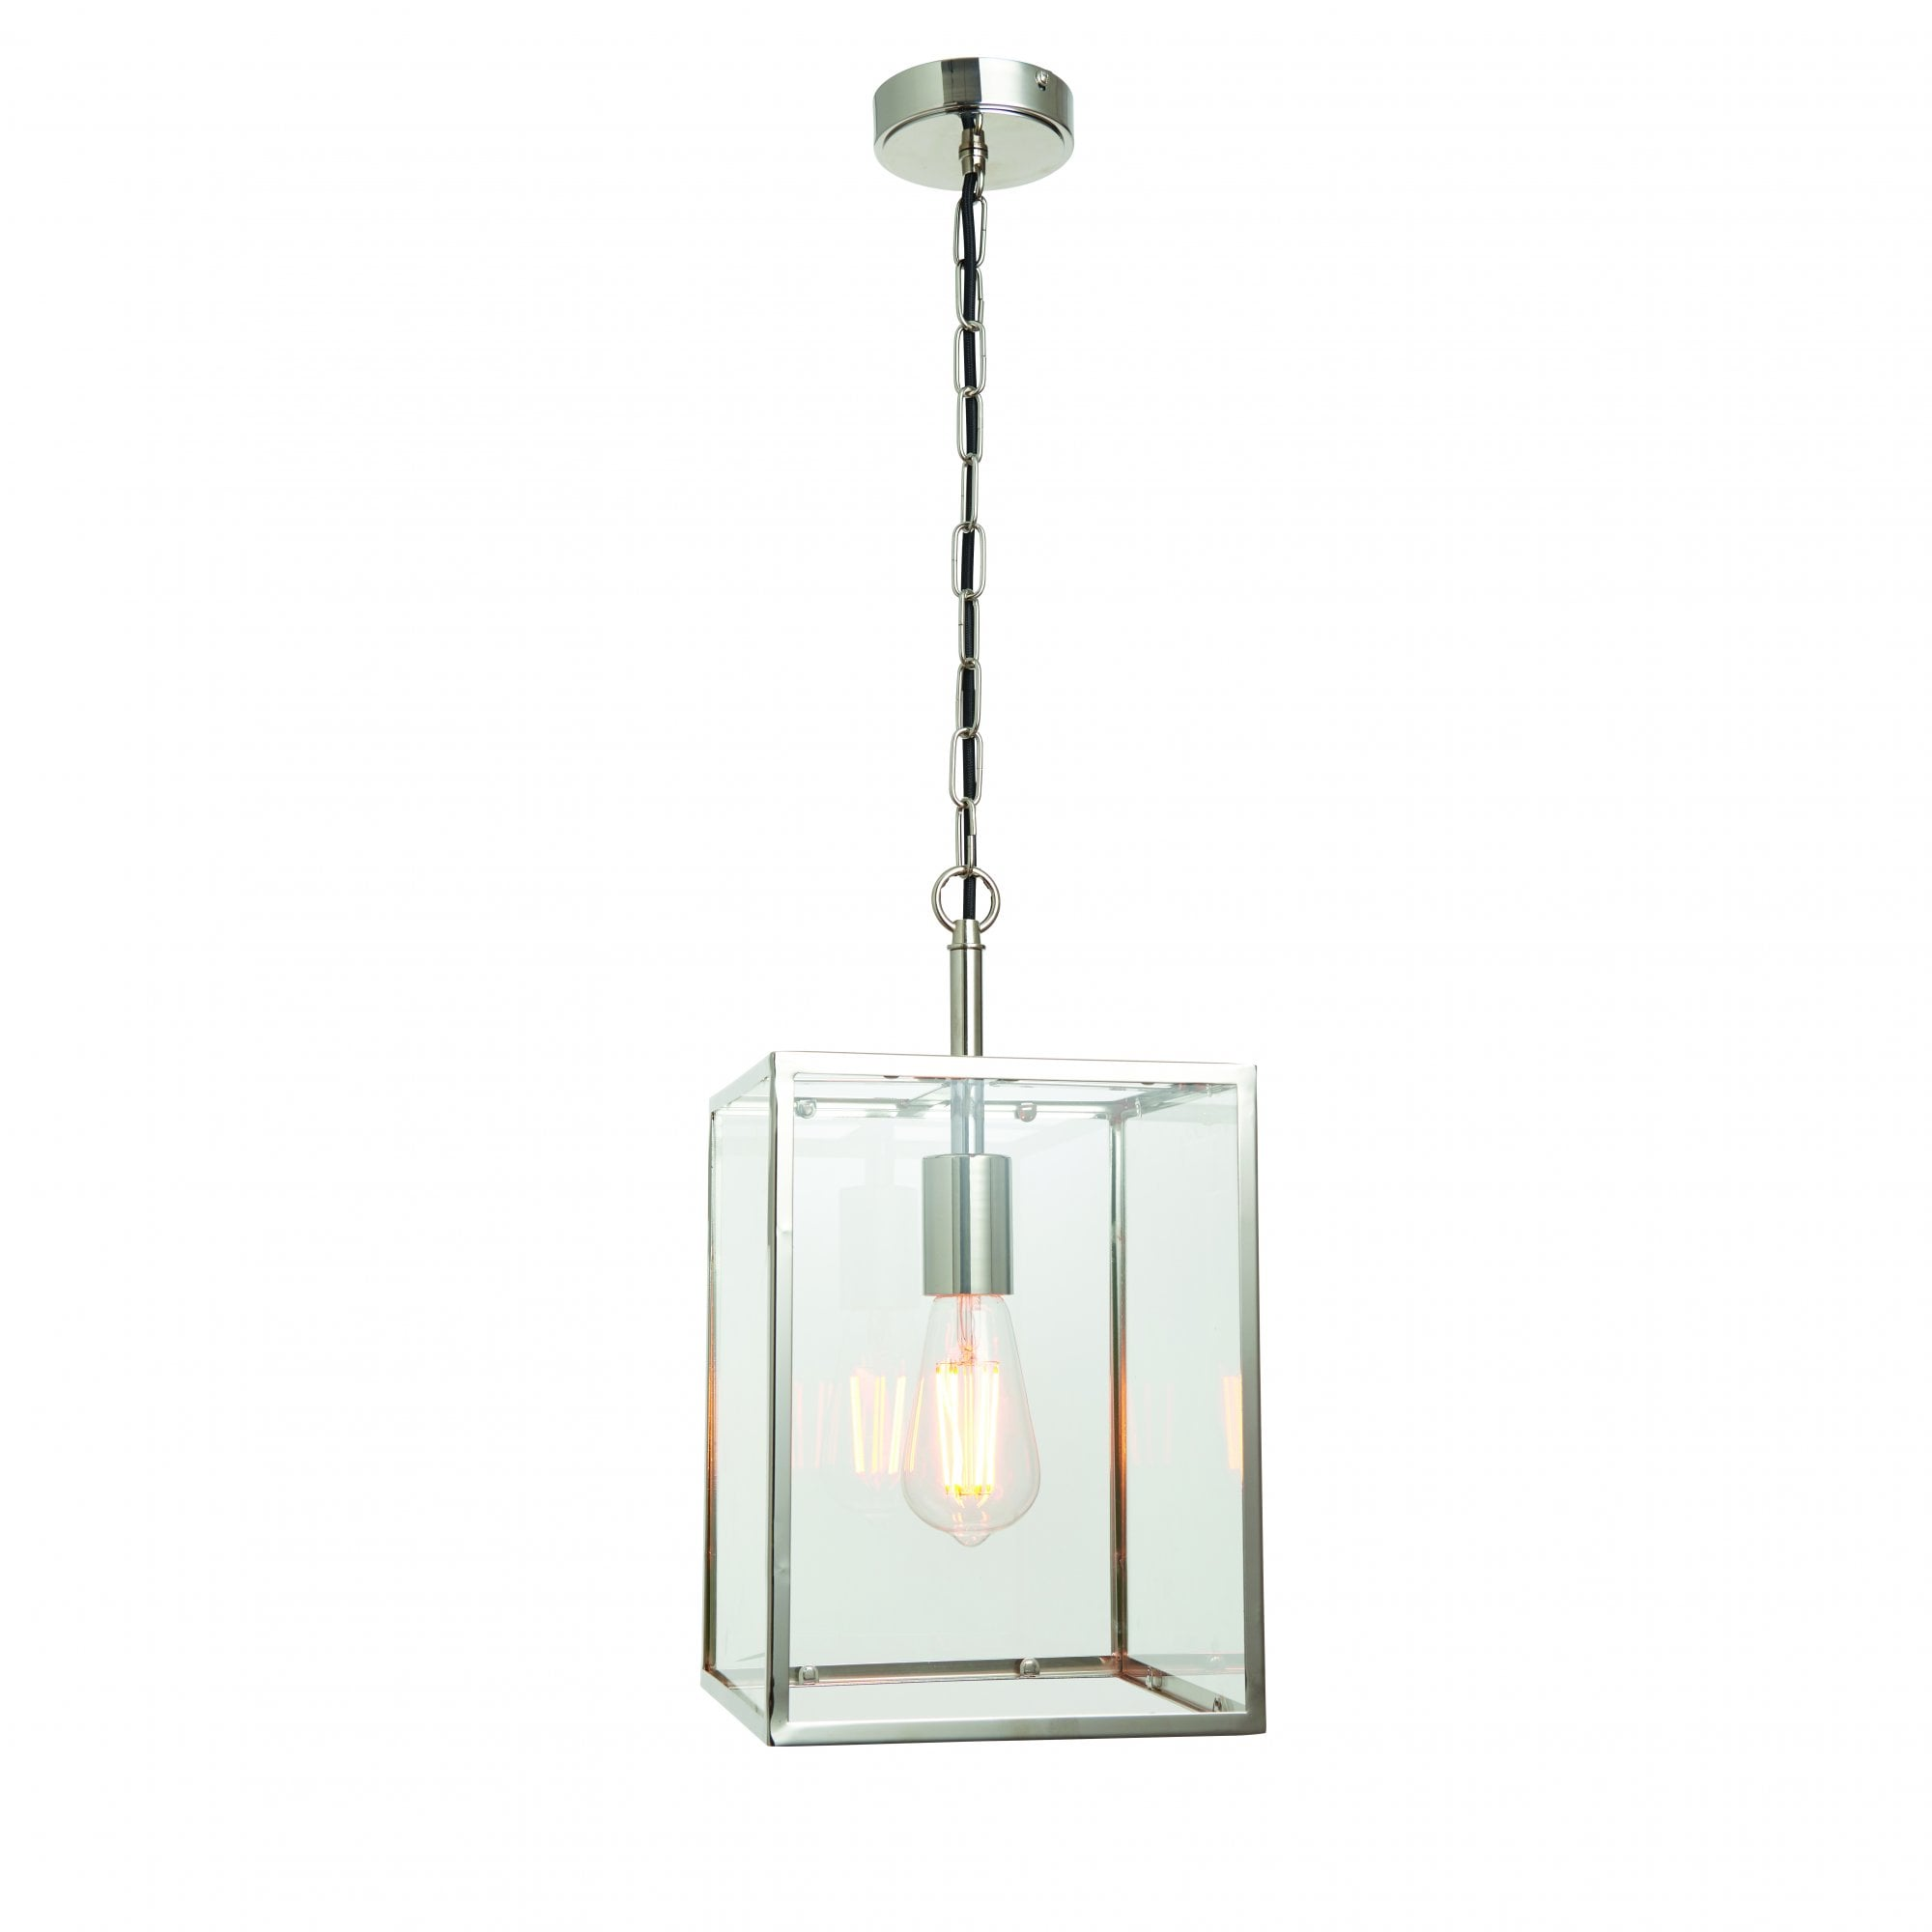 Hadden Ceiling Pendant Lantern Style Nickel Finish Glass